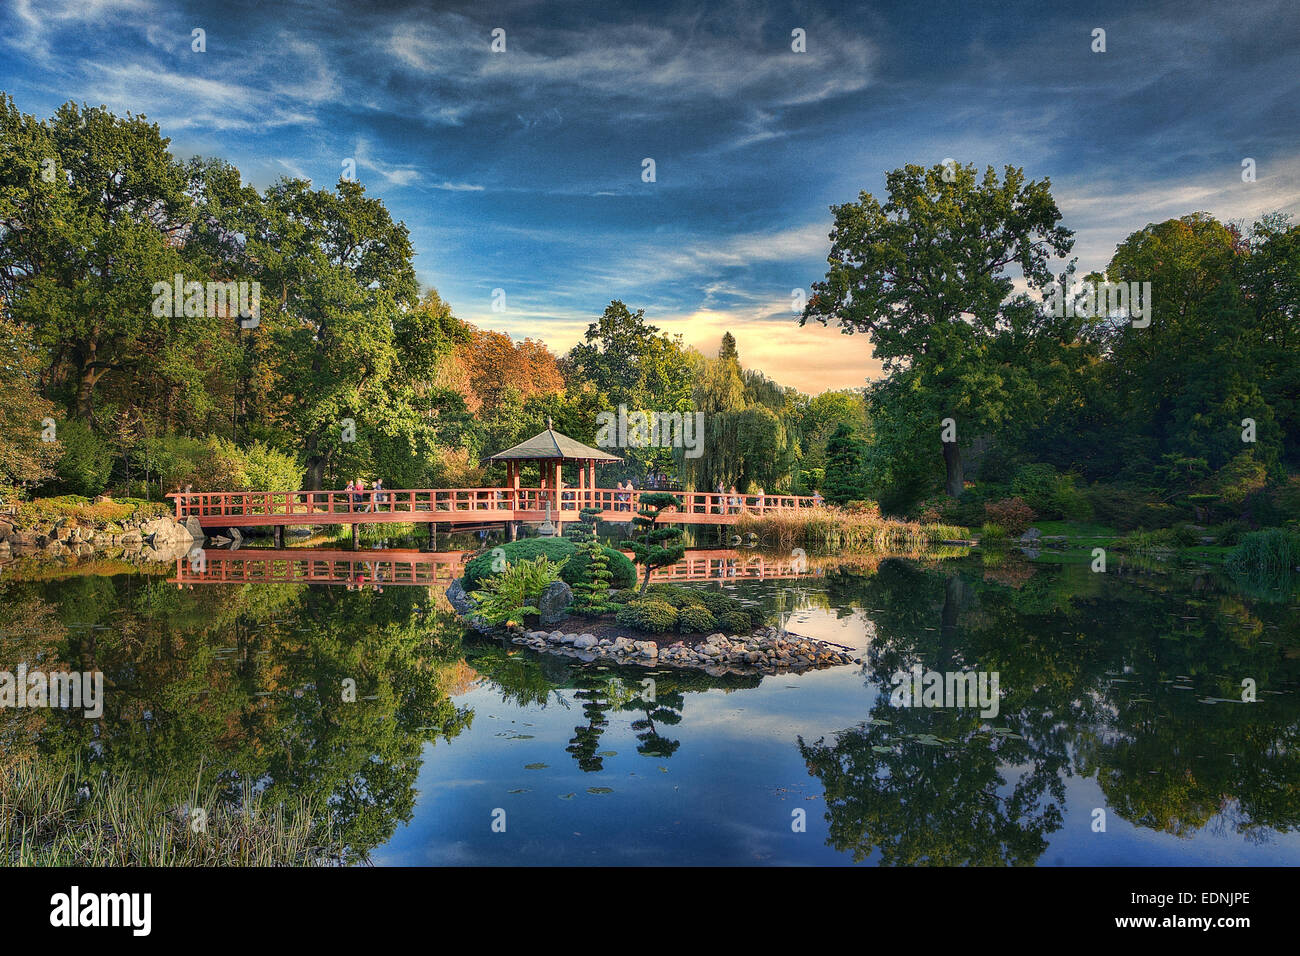 Japanese Garden in Wroclaw - Stock Image